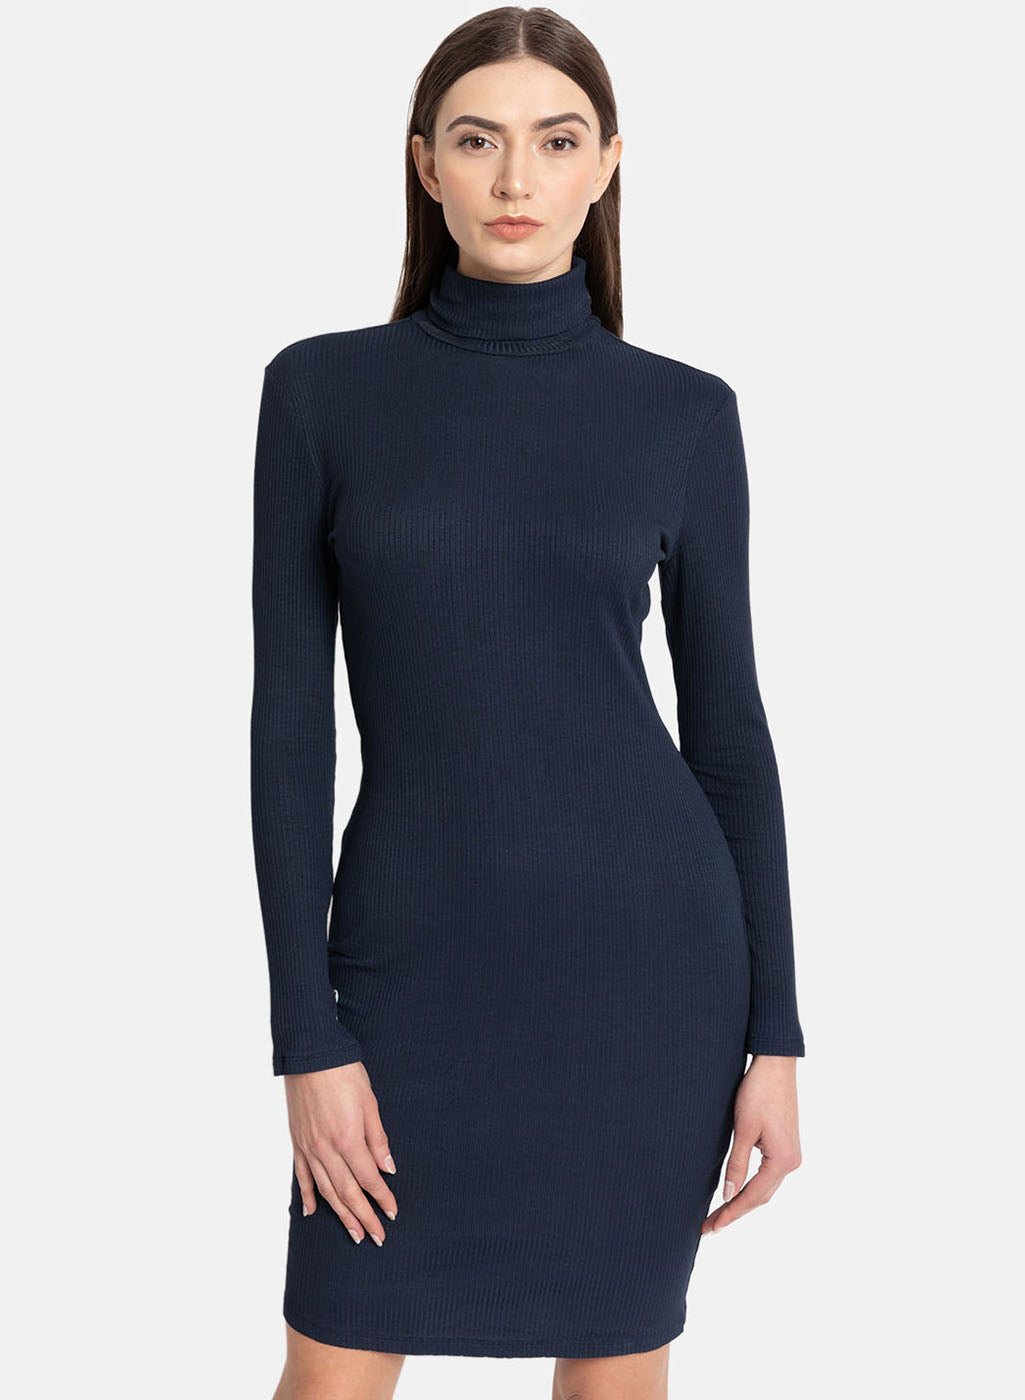 High Neck Button Detail Midi Dress (Additional 20% OFF)